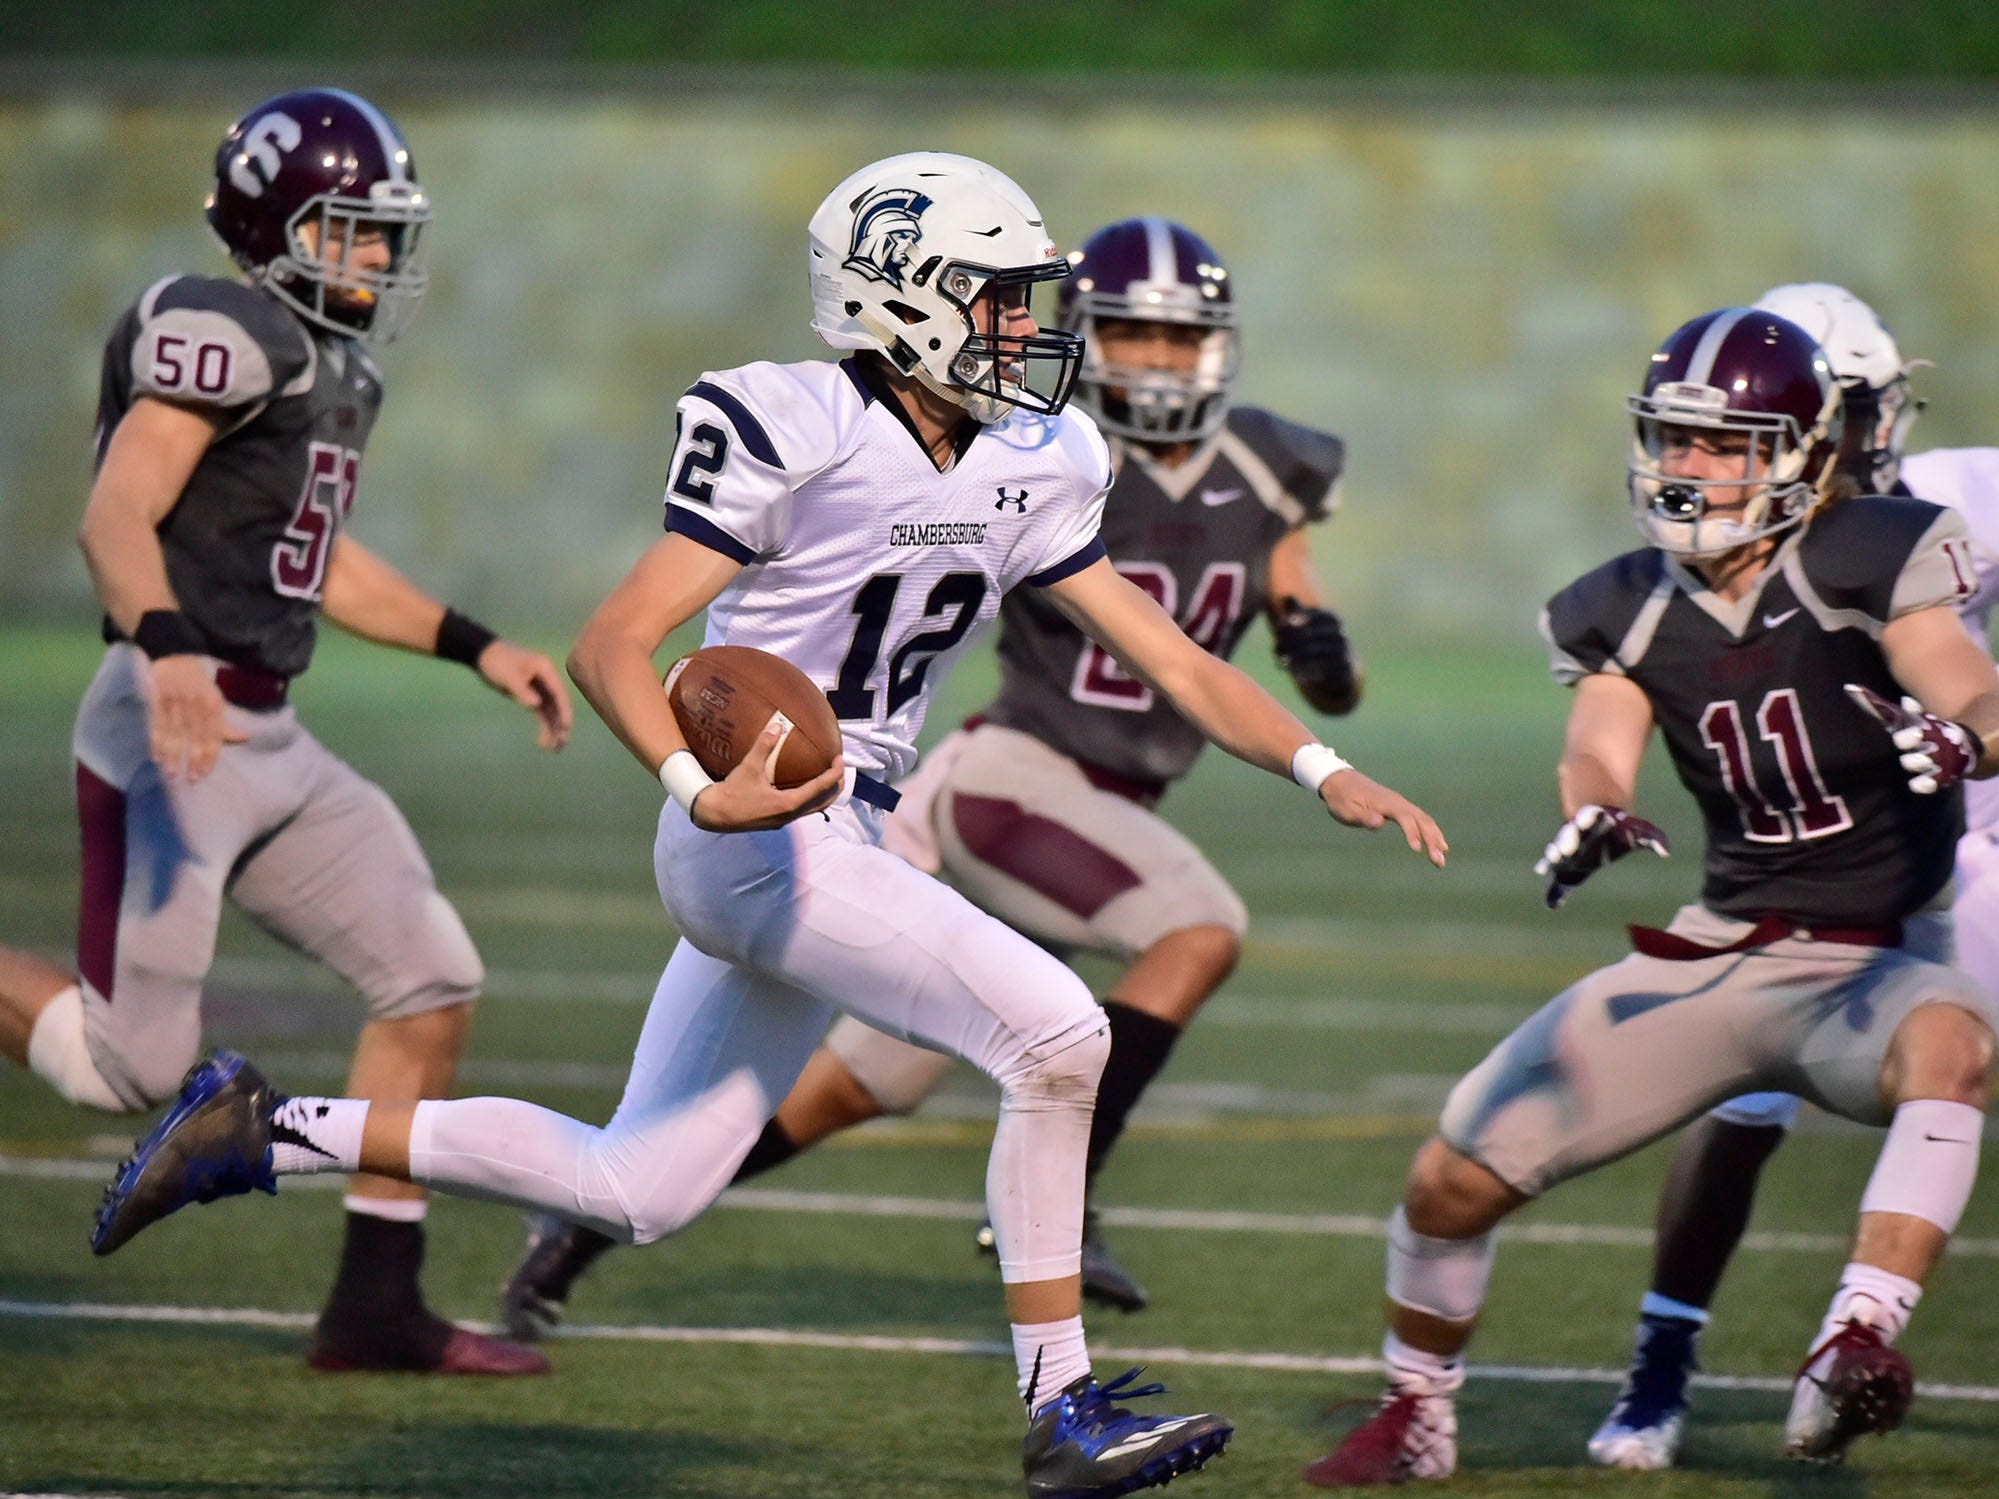 Chambersburg's Brady Stumbaugh picks up a first down. Chambersburg, 4-0 suffered their first loss of the season against undefeated State College in PIAA road game on Friday, Sept. 21, 2018.